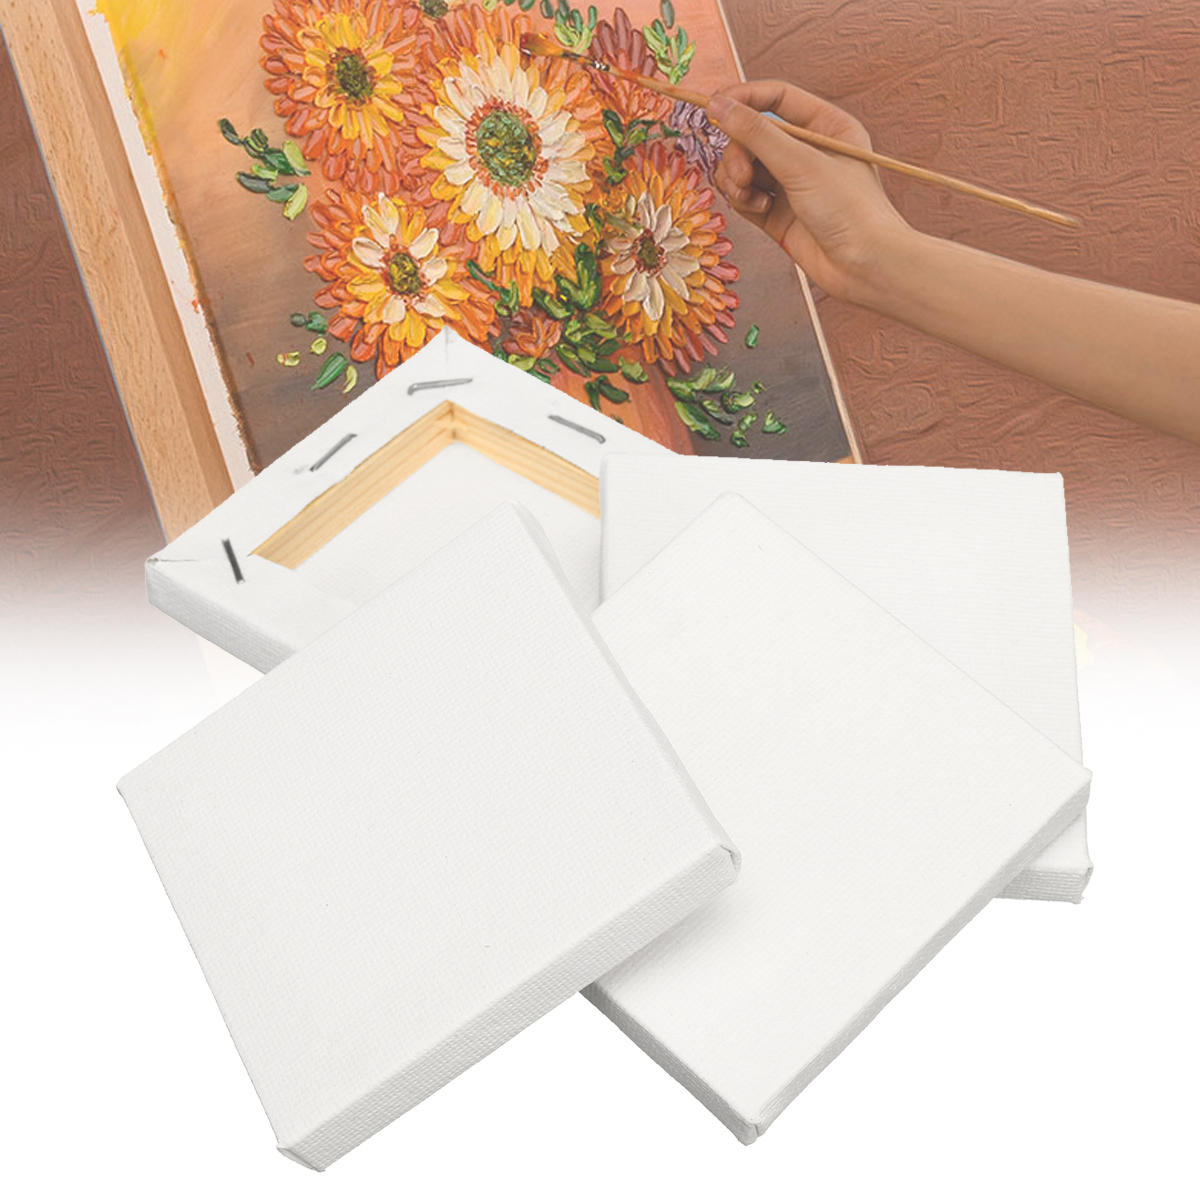 8PCS White Mini Blank Canvas Acrylic Paintings Frame Oil Paint Artist Square Art Sketch Boards Square Canvas фото